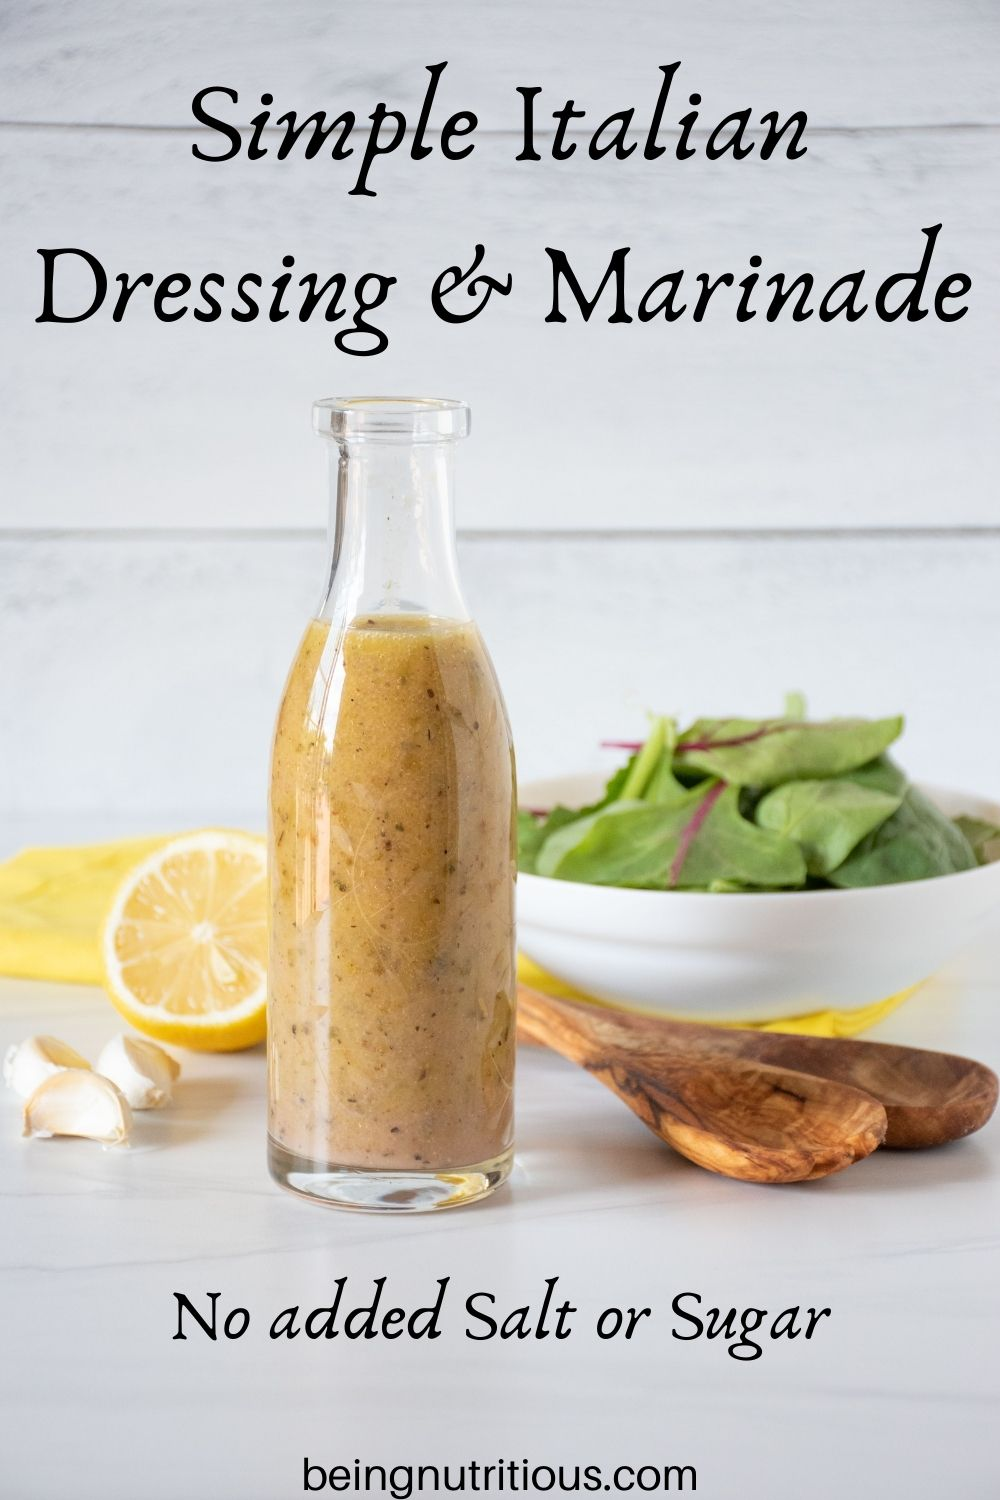 Glass bottle of salad dressing with text overlay: Simple Italian Dressing and Marinade; no added salt or sugar.